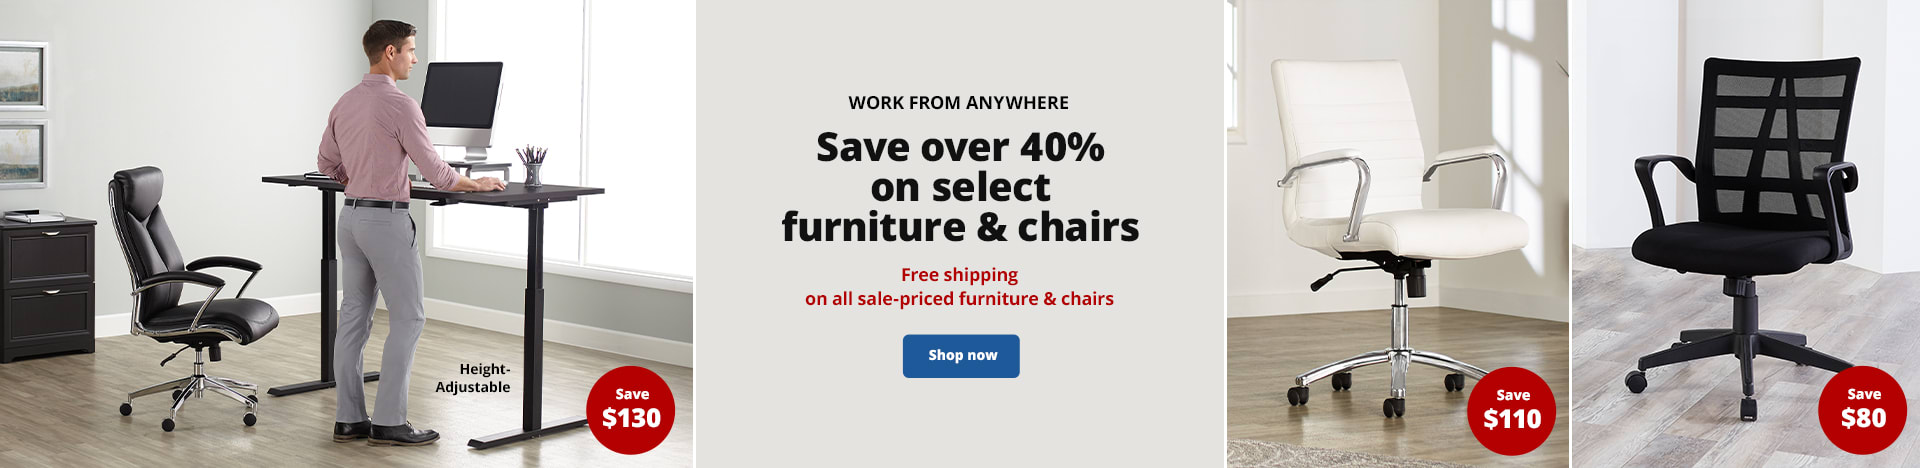 Save over 40% on select furniture & chairs. Free shipping on all sale-priced furniture & chairs